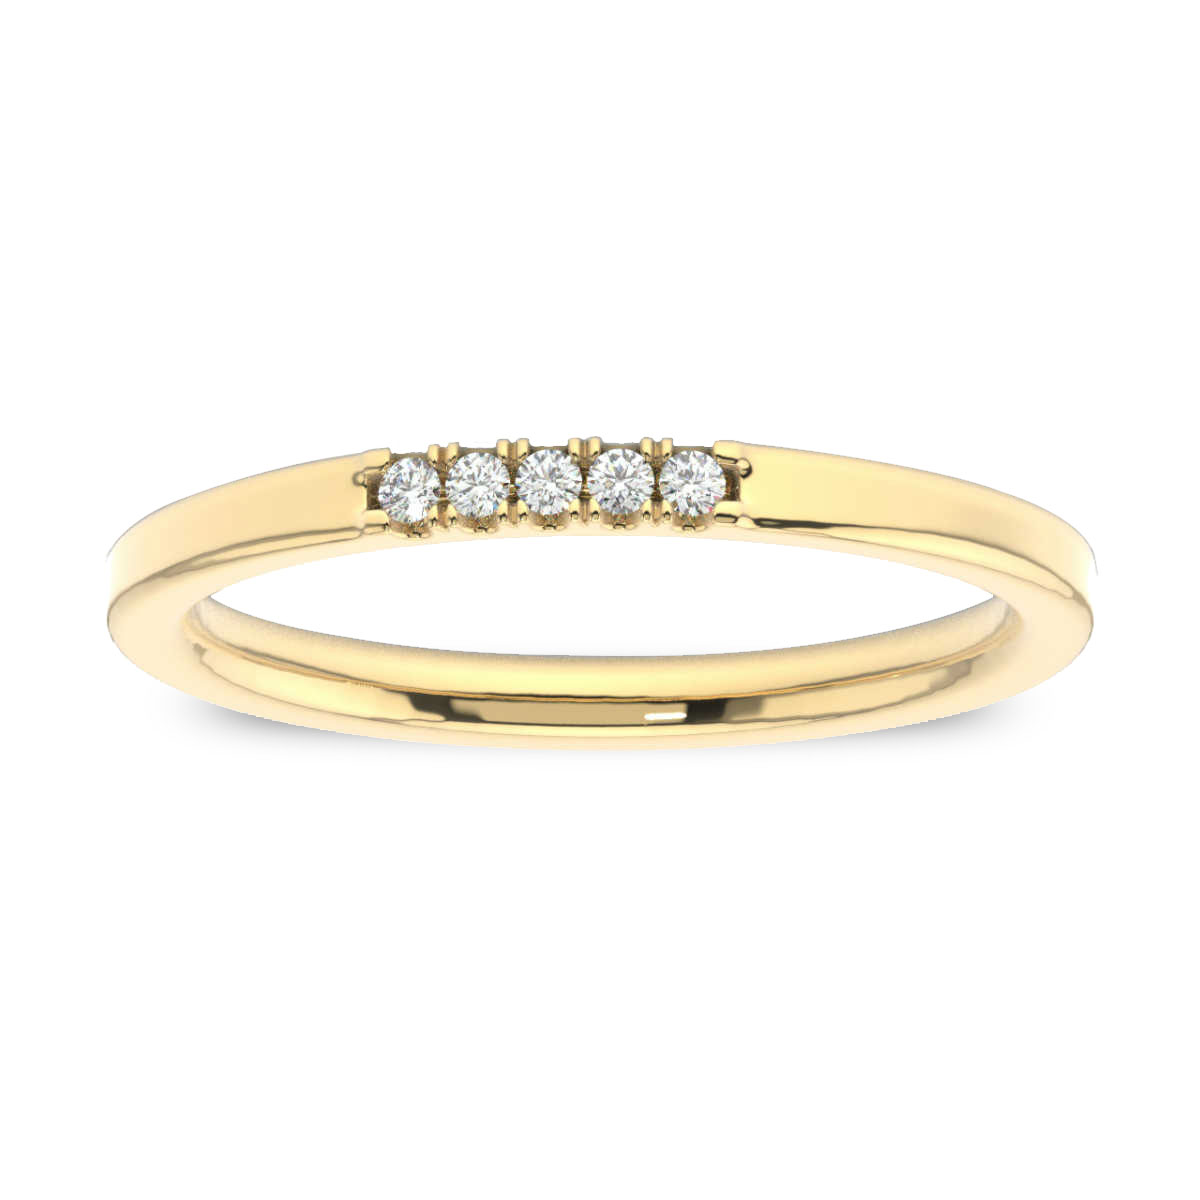 14K Yellow Gold Gina Petite Stackable Diamond Ring (1/20 ct. tw)